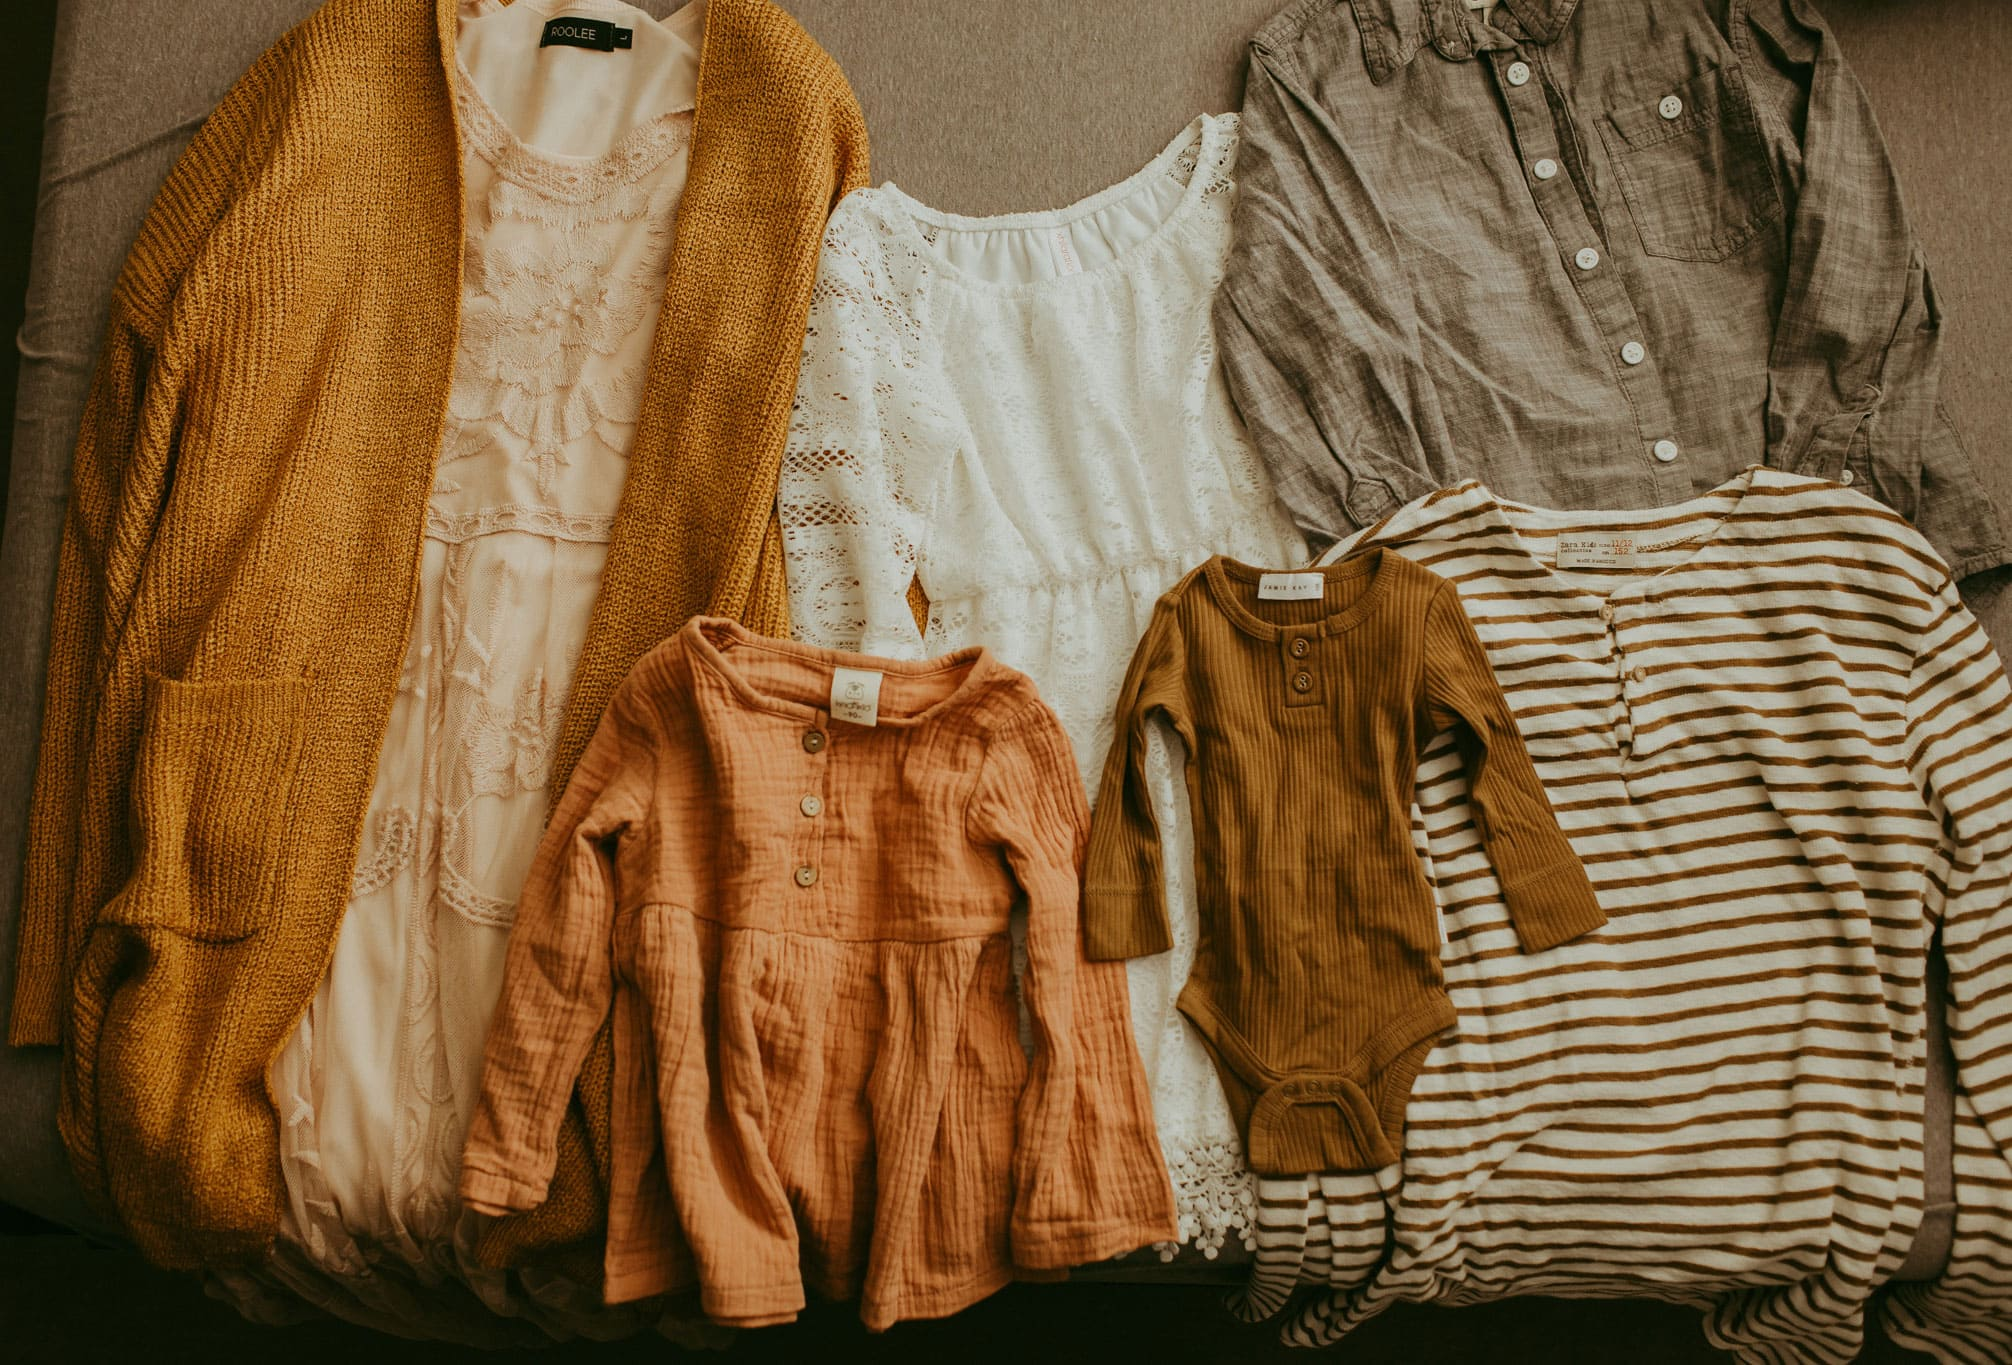 example of what to wear for your photography session - warm colors